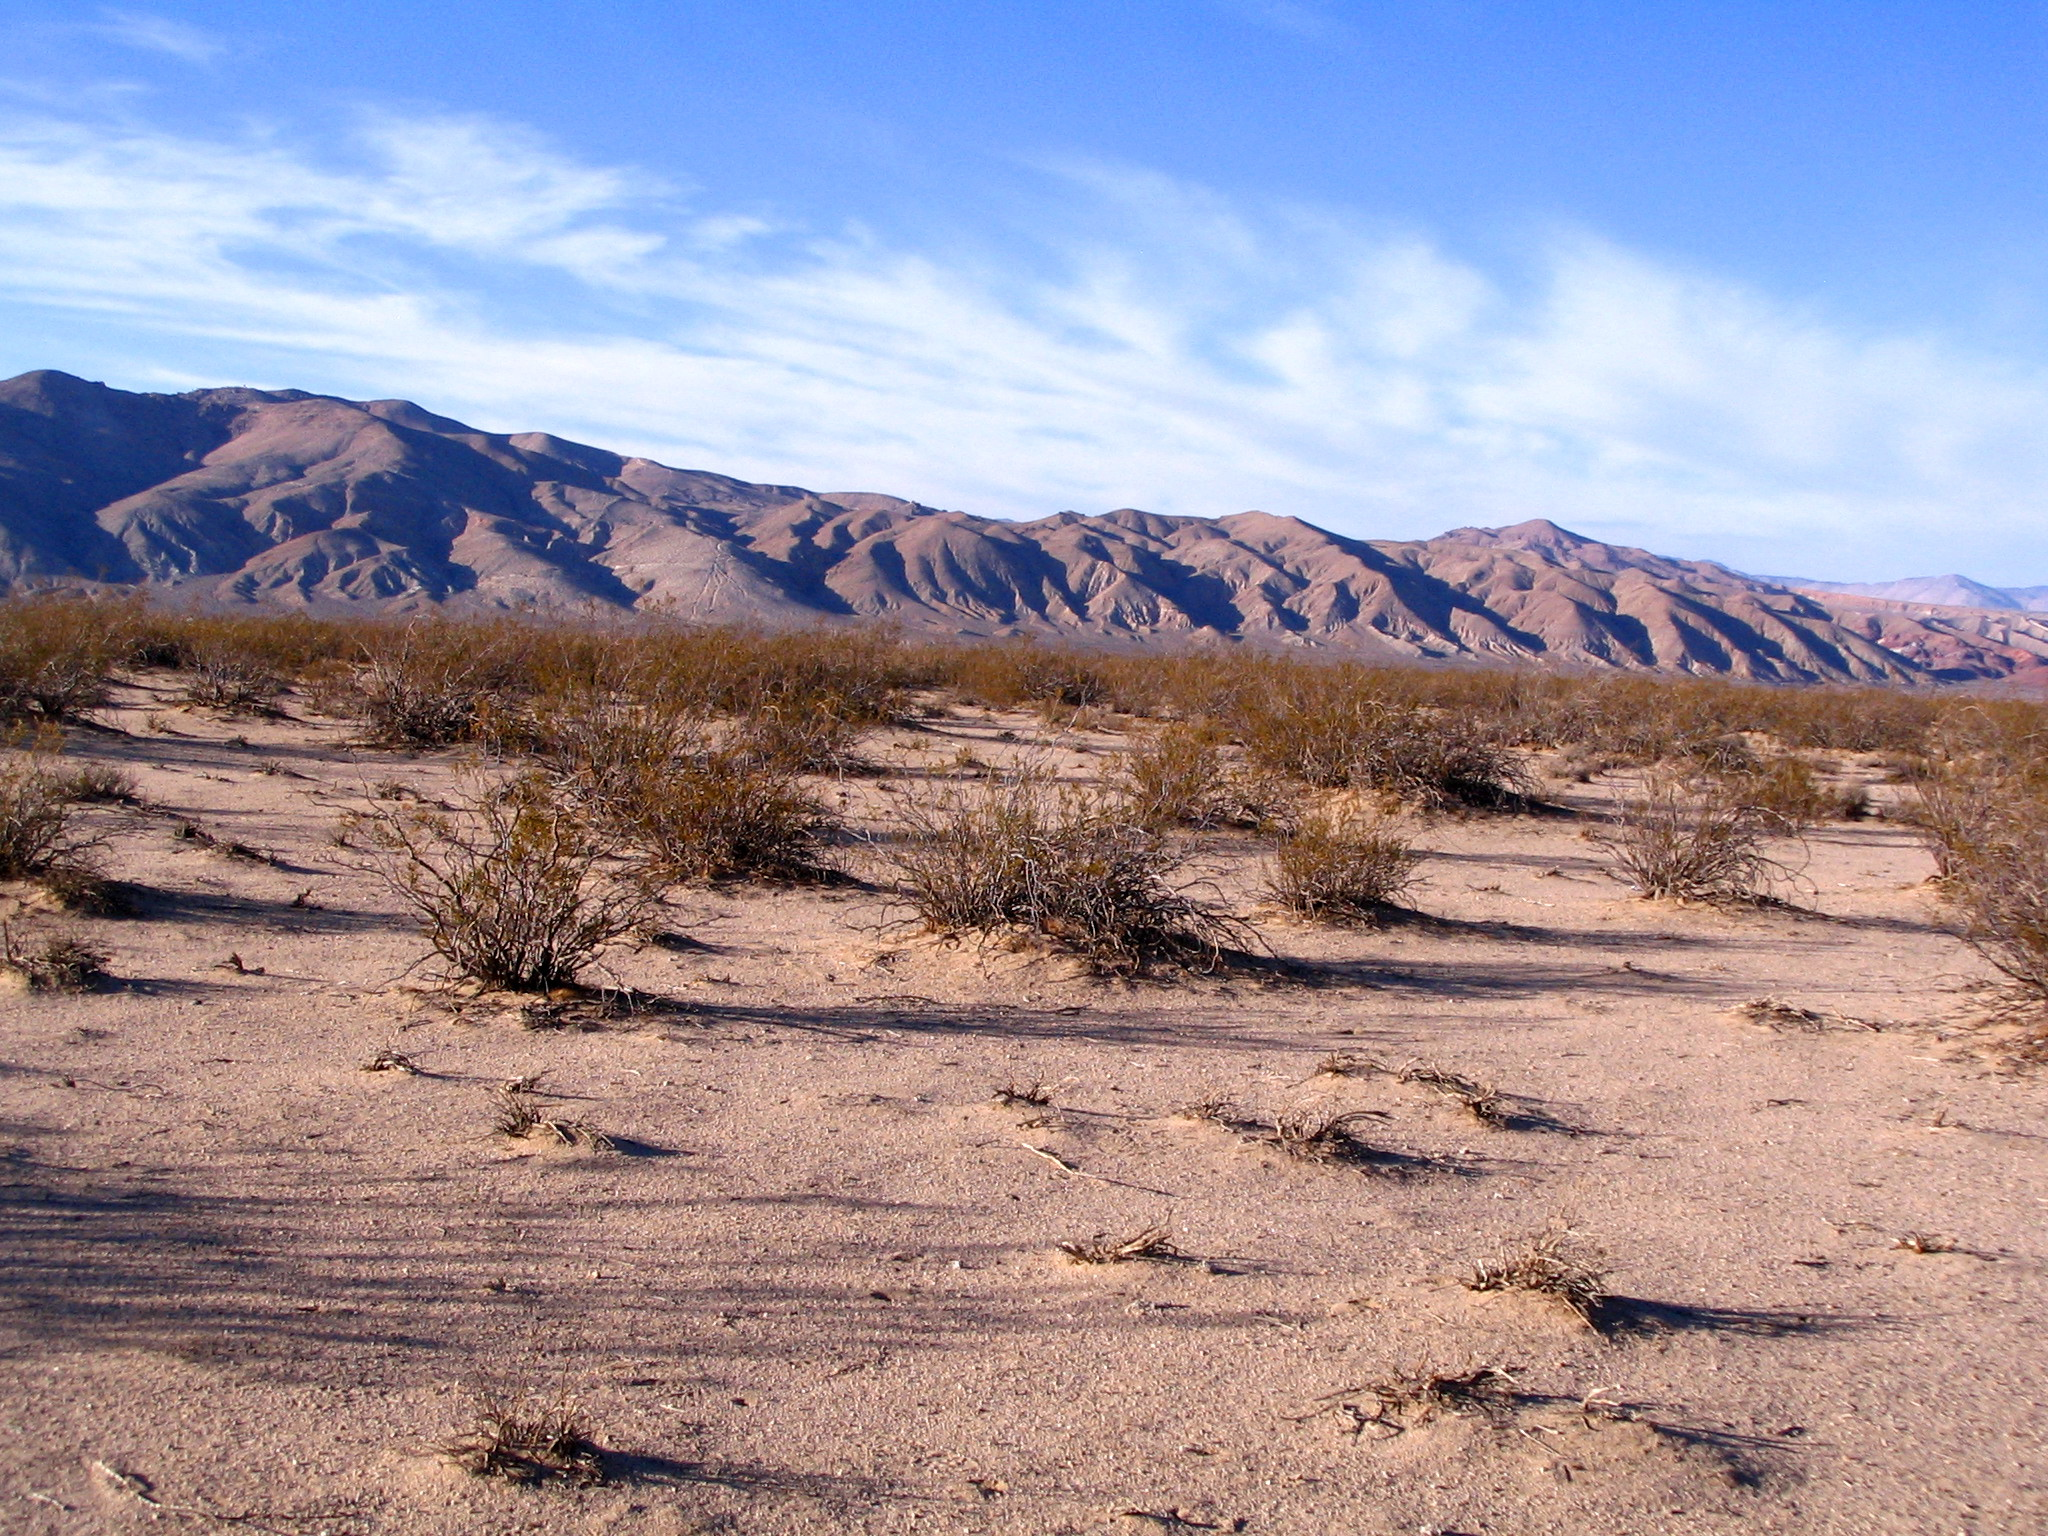 Desert Mountainscapes Here For You!